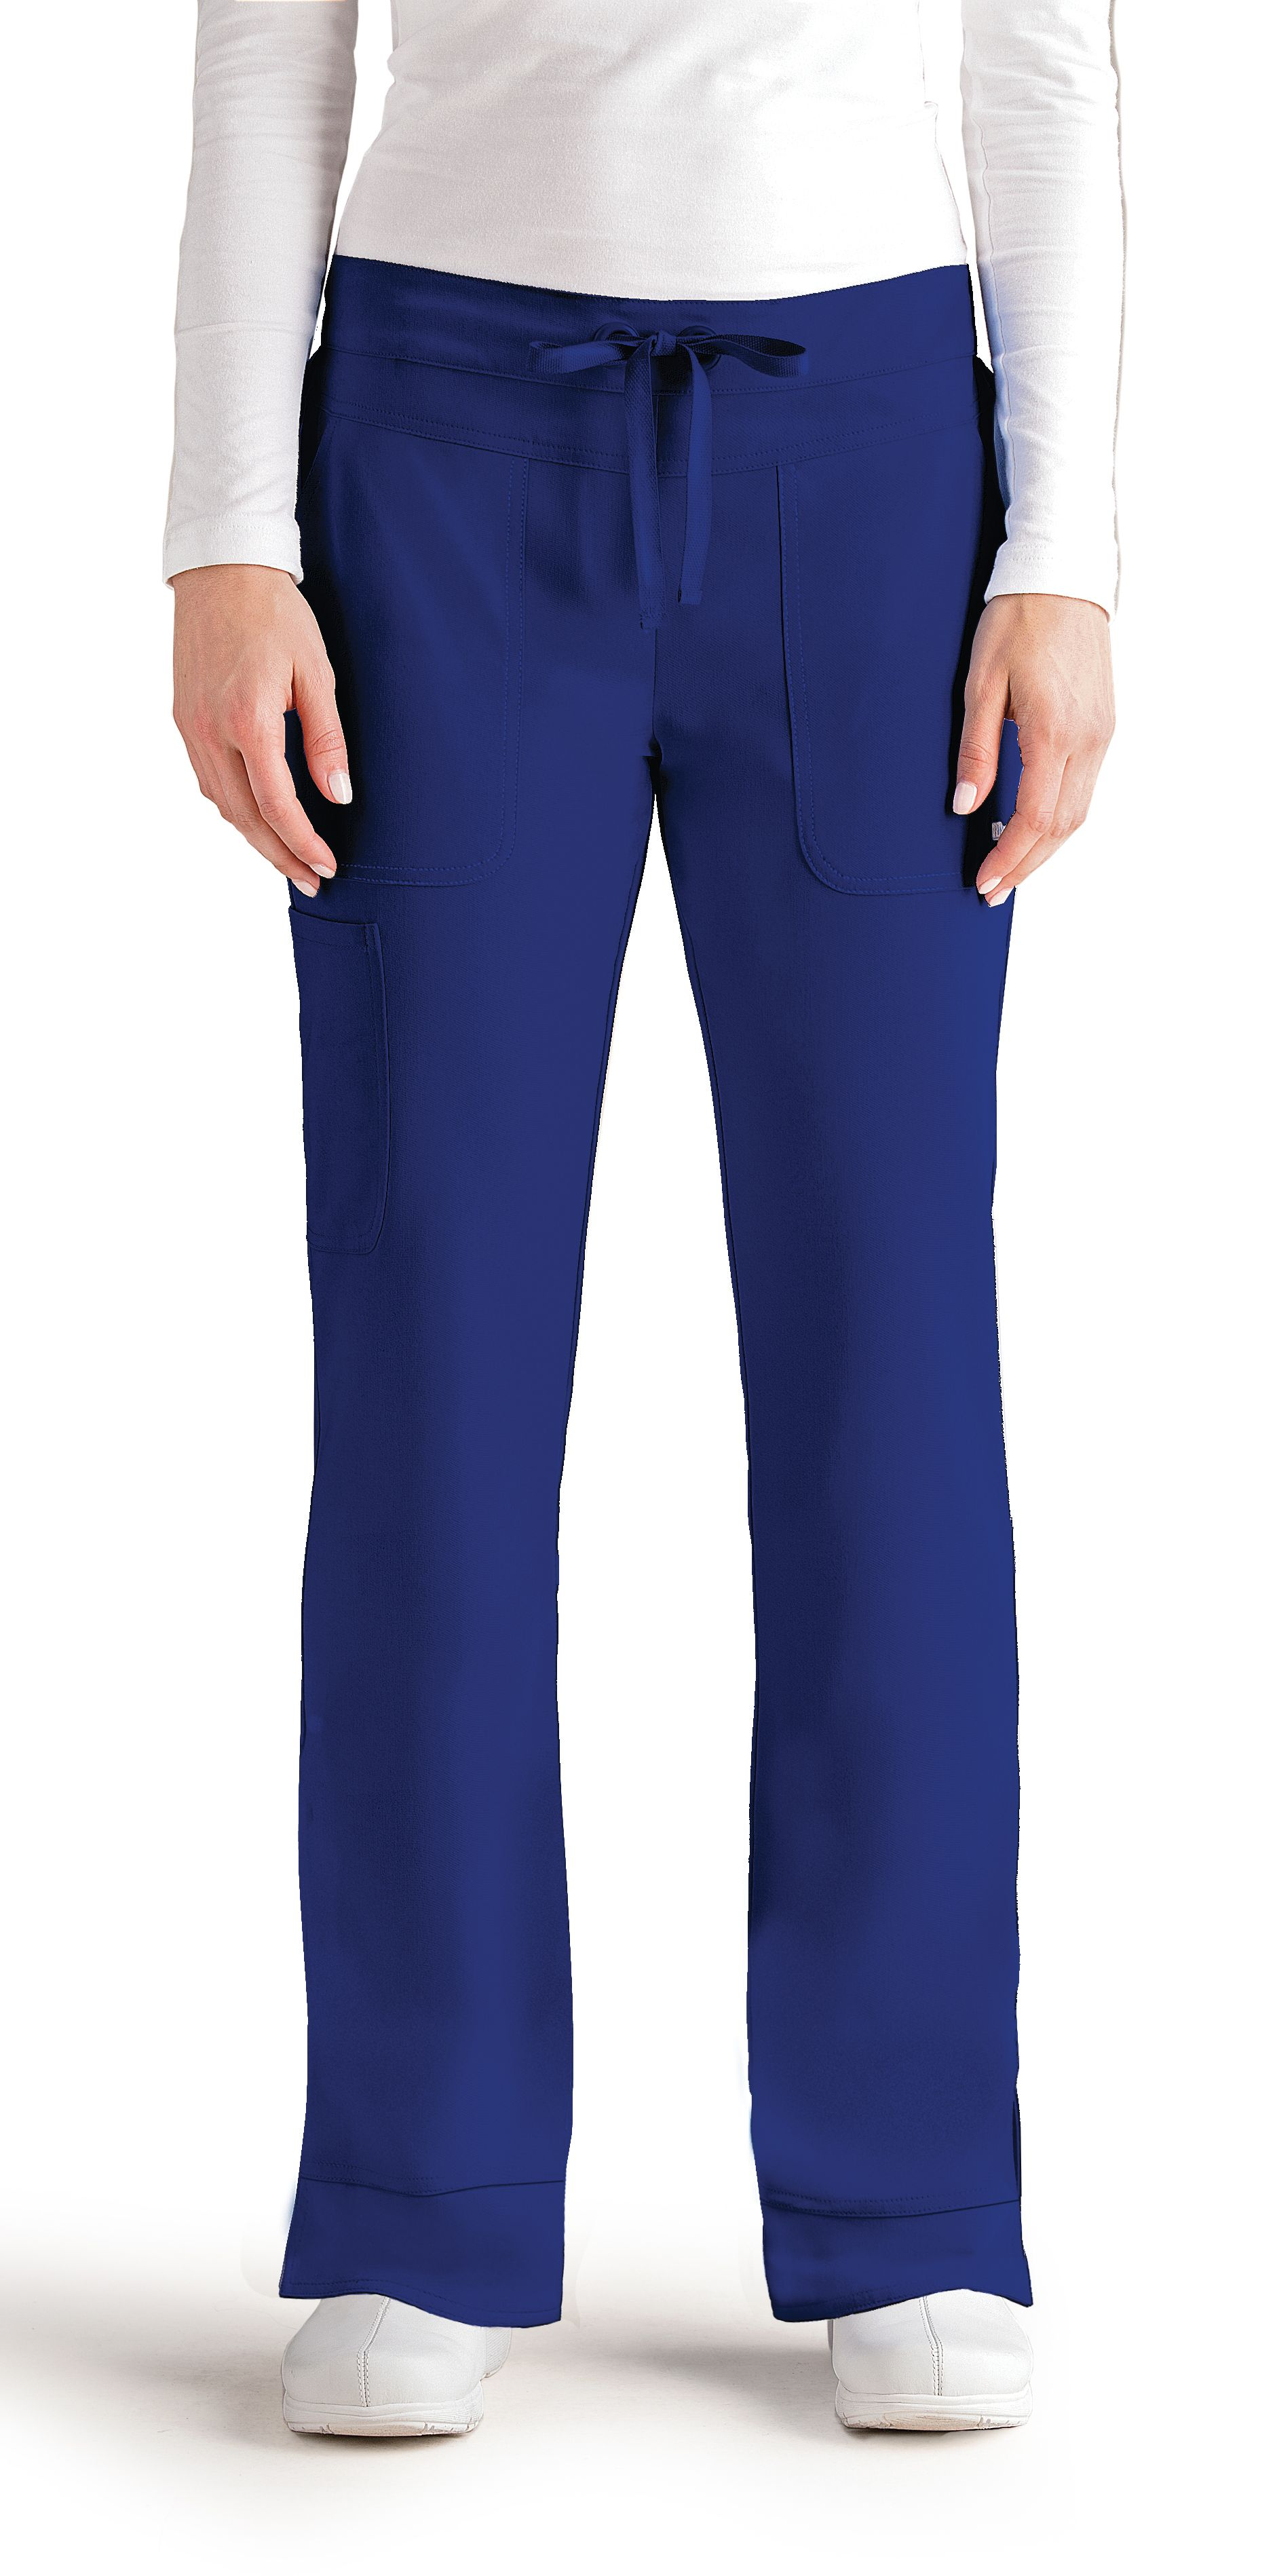 6c7caf81f0a Callie Pant in Electric. 3 pocket, low rise, straight leg, tie front, and  elastic back. Comes in 11 colors!